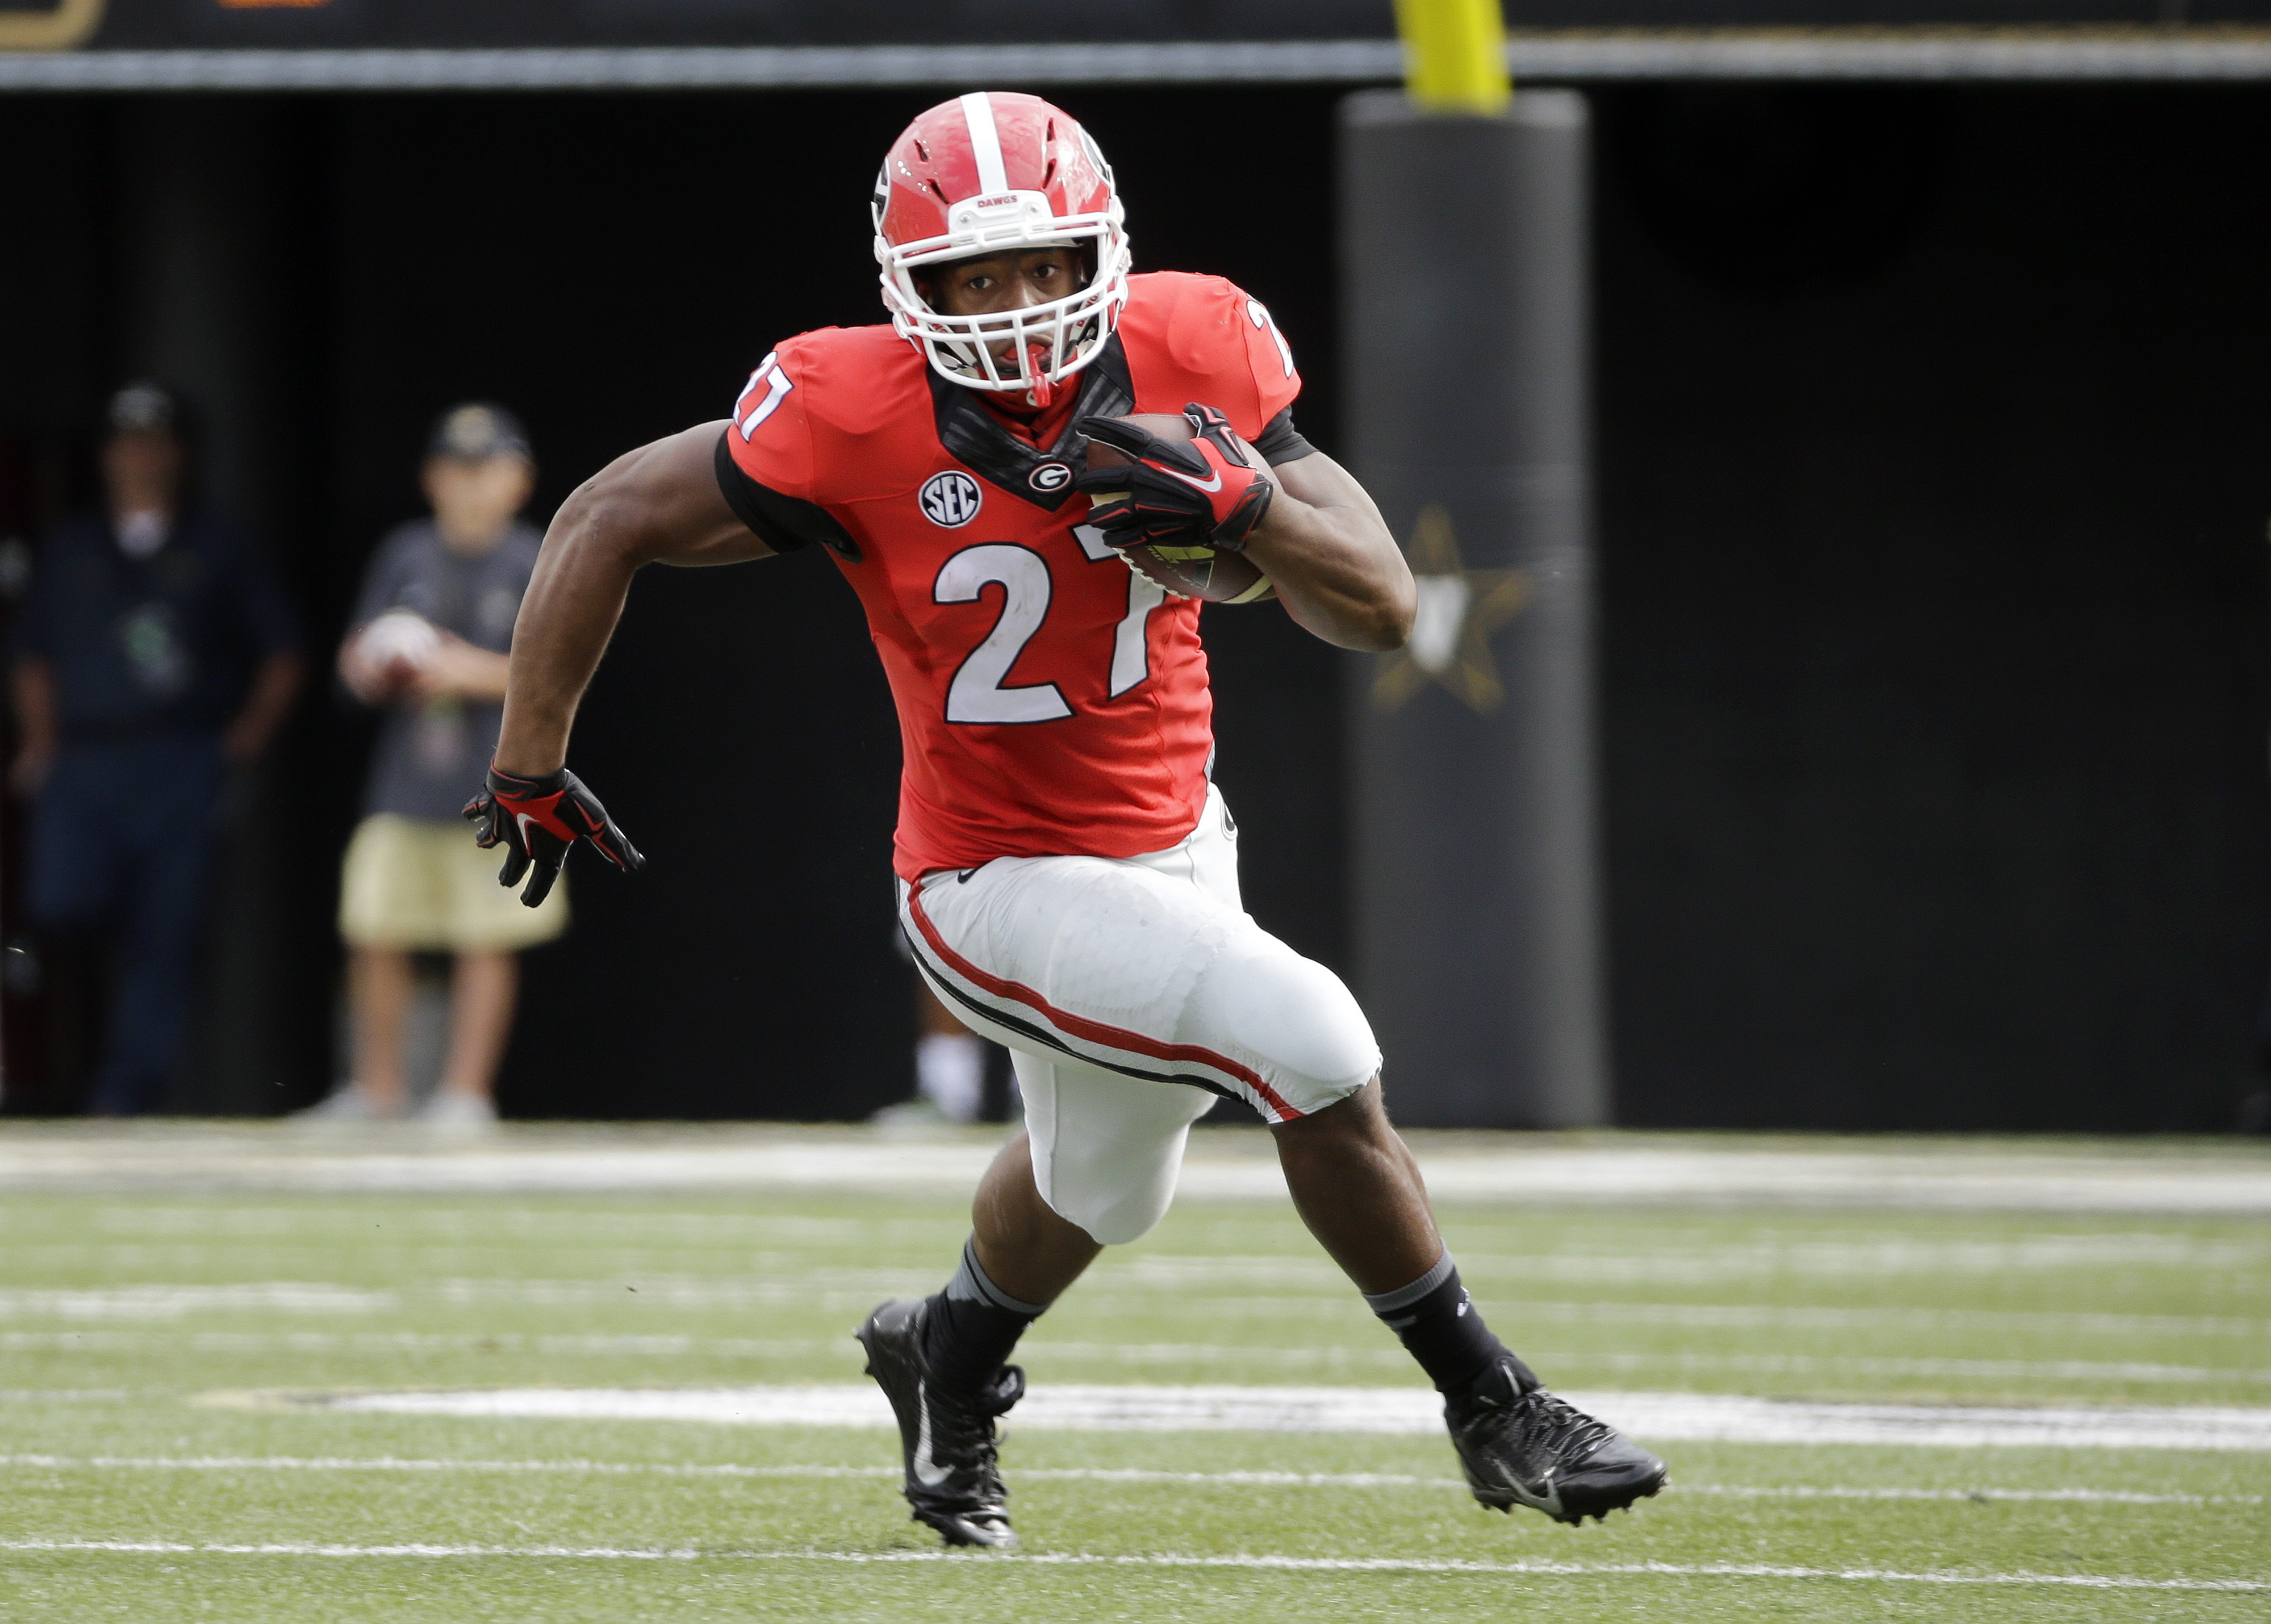 FILE - In this Sept. 12, 2015 file photo, Georgia running back Nick Chubb carries the ball against Vanderbilt in the first half of an NCAA college football game in Nashville, Tenn. No one player ever determines the fortunes of a team, although the quarter